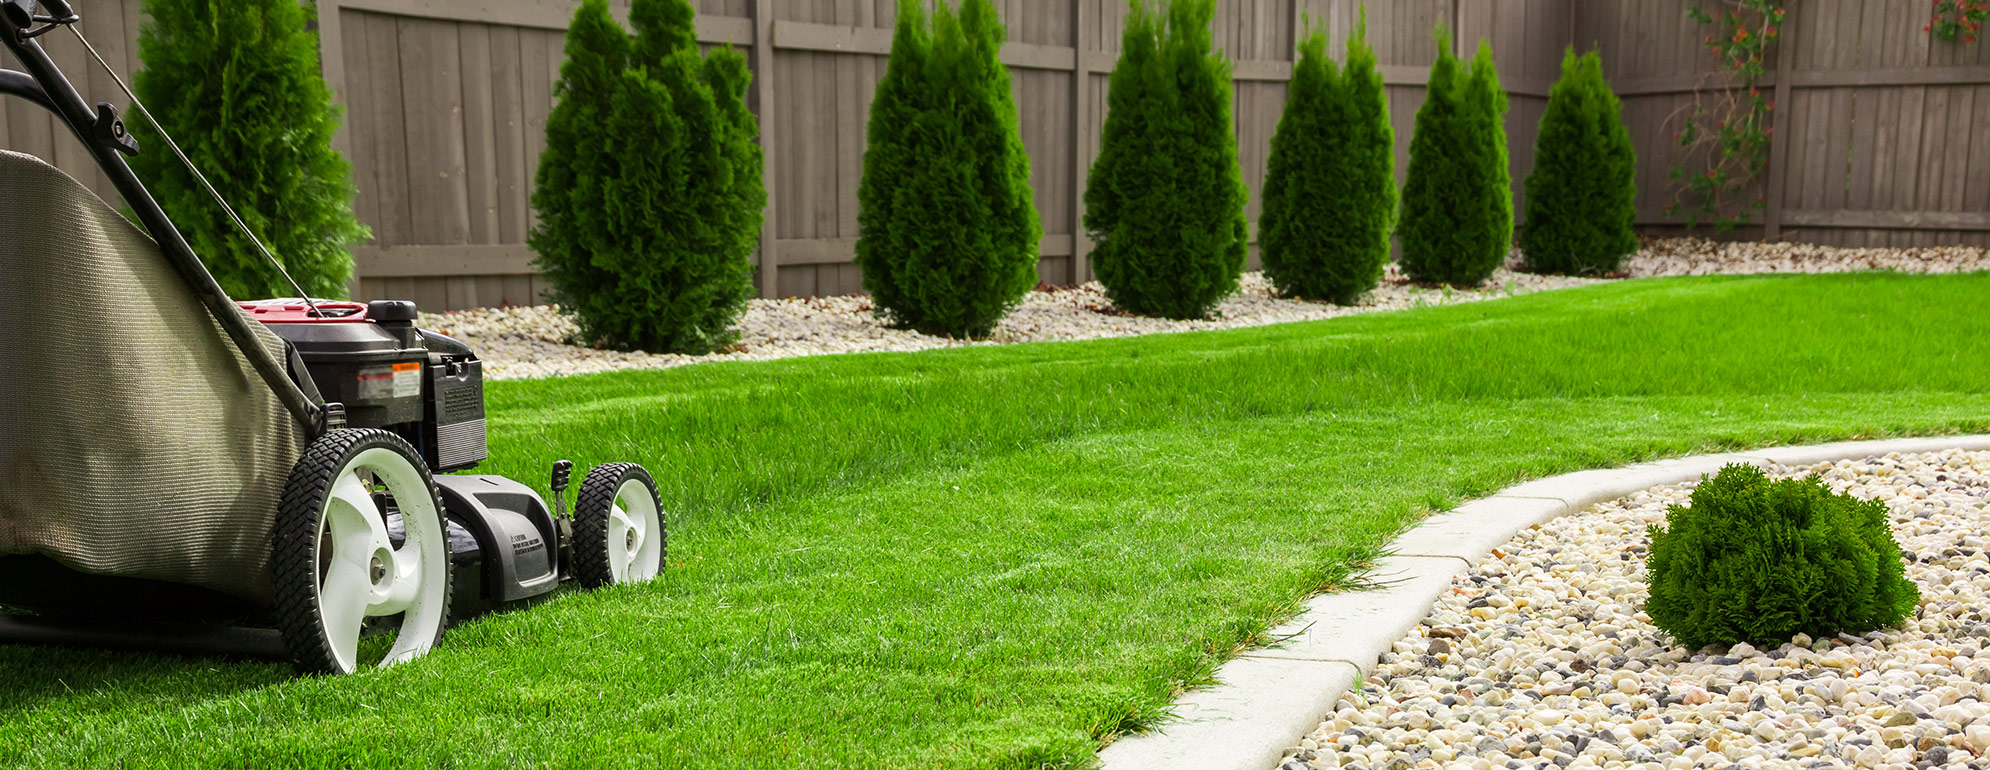 lawn mowing services warragul